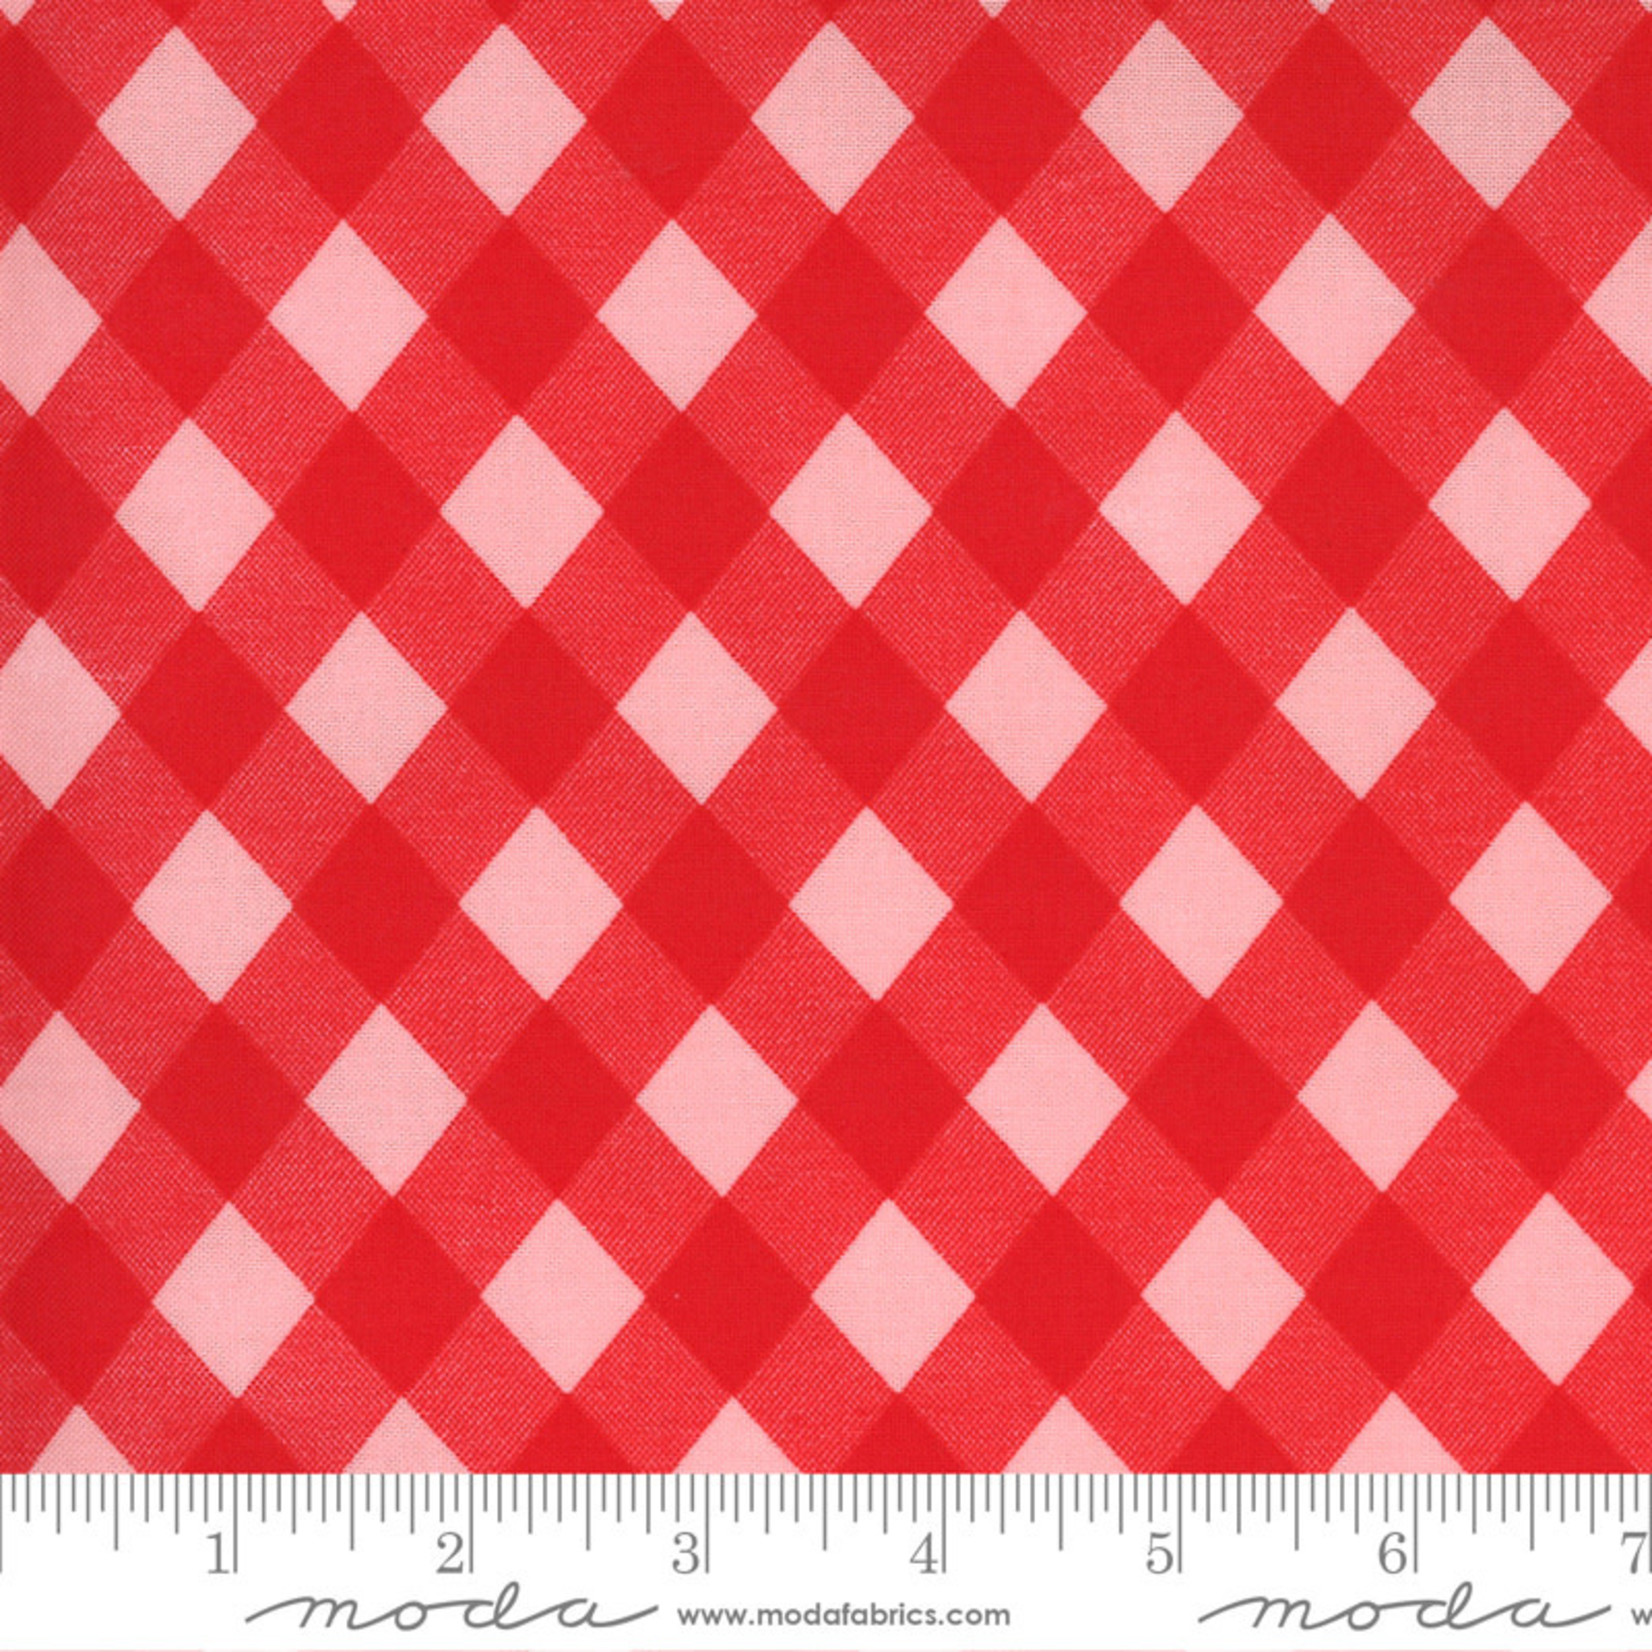 Bonnie & Camille Sunday Stroll, Picnic Gingham, Red Pink 55227 13 $0.20 per cm or $20/m